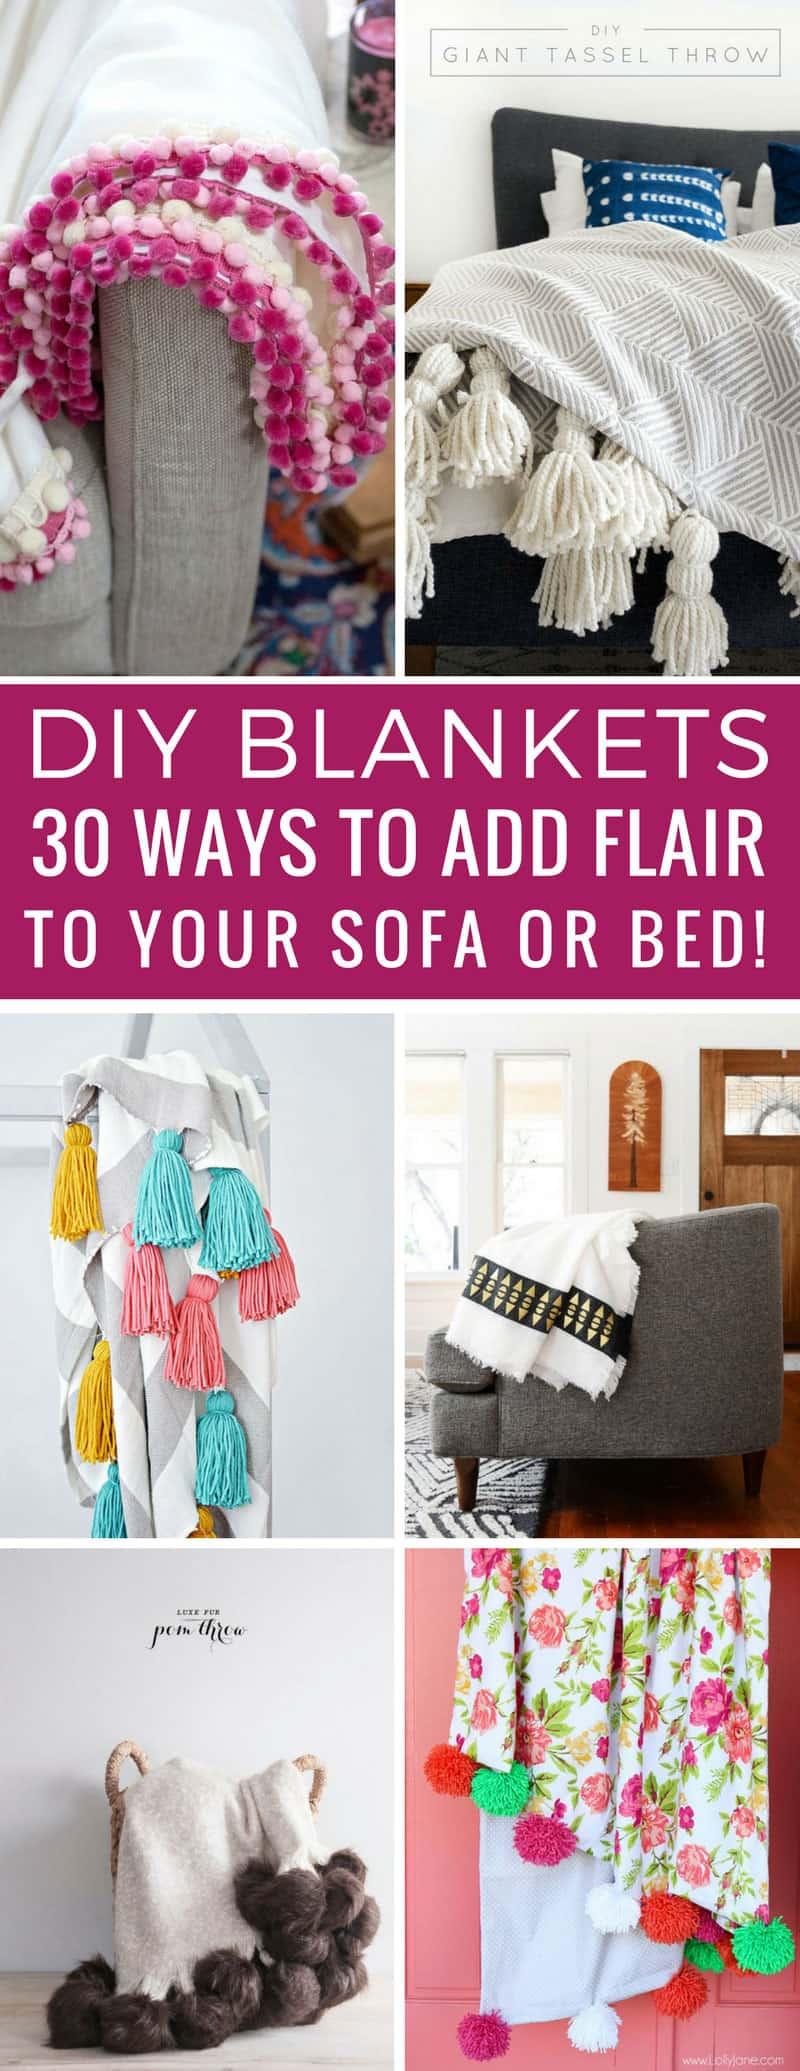 Oh my goodness these homemade blanket ideas are easy and so much cheaper than the ones in the store! Thanks for sharing!